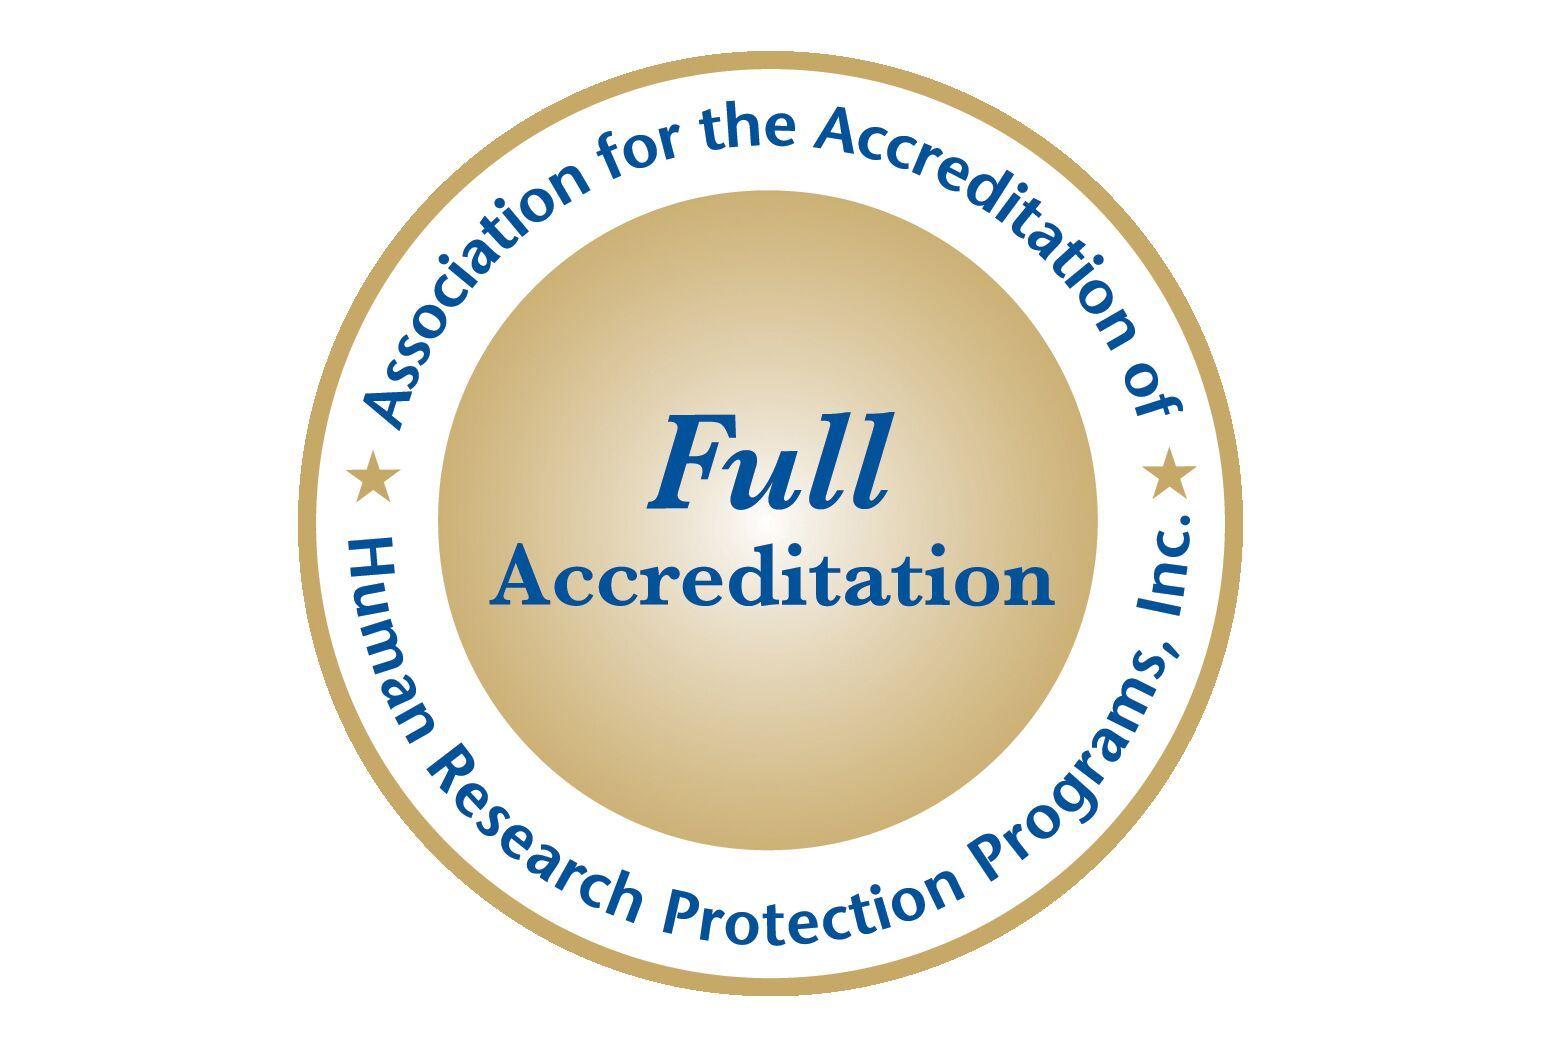 Badge for Association for the Accreditation of Human Research Protection Programs, Inc.